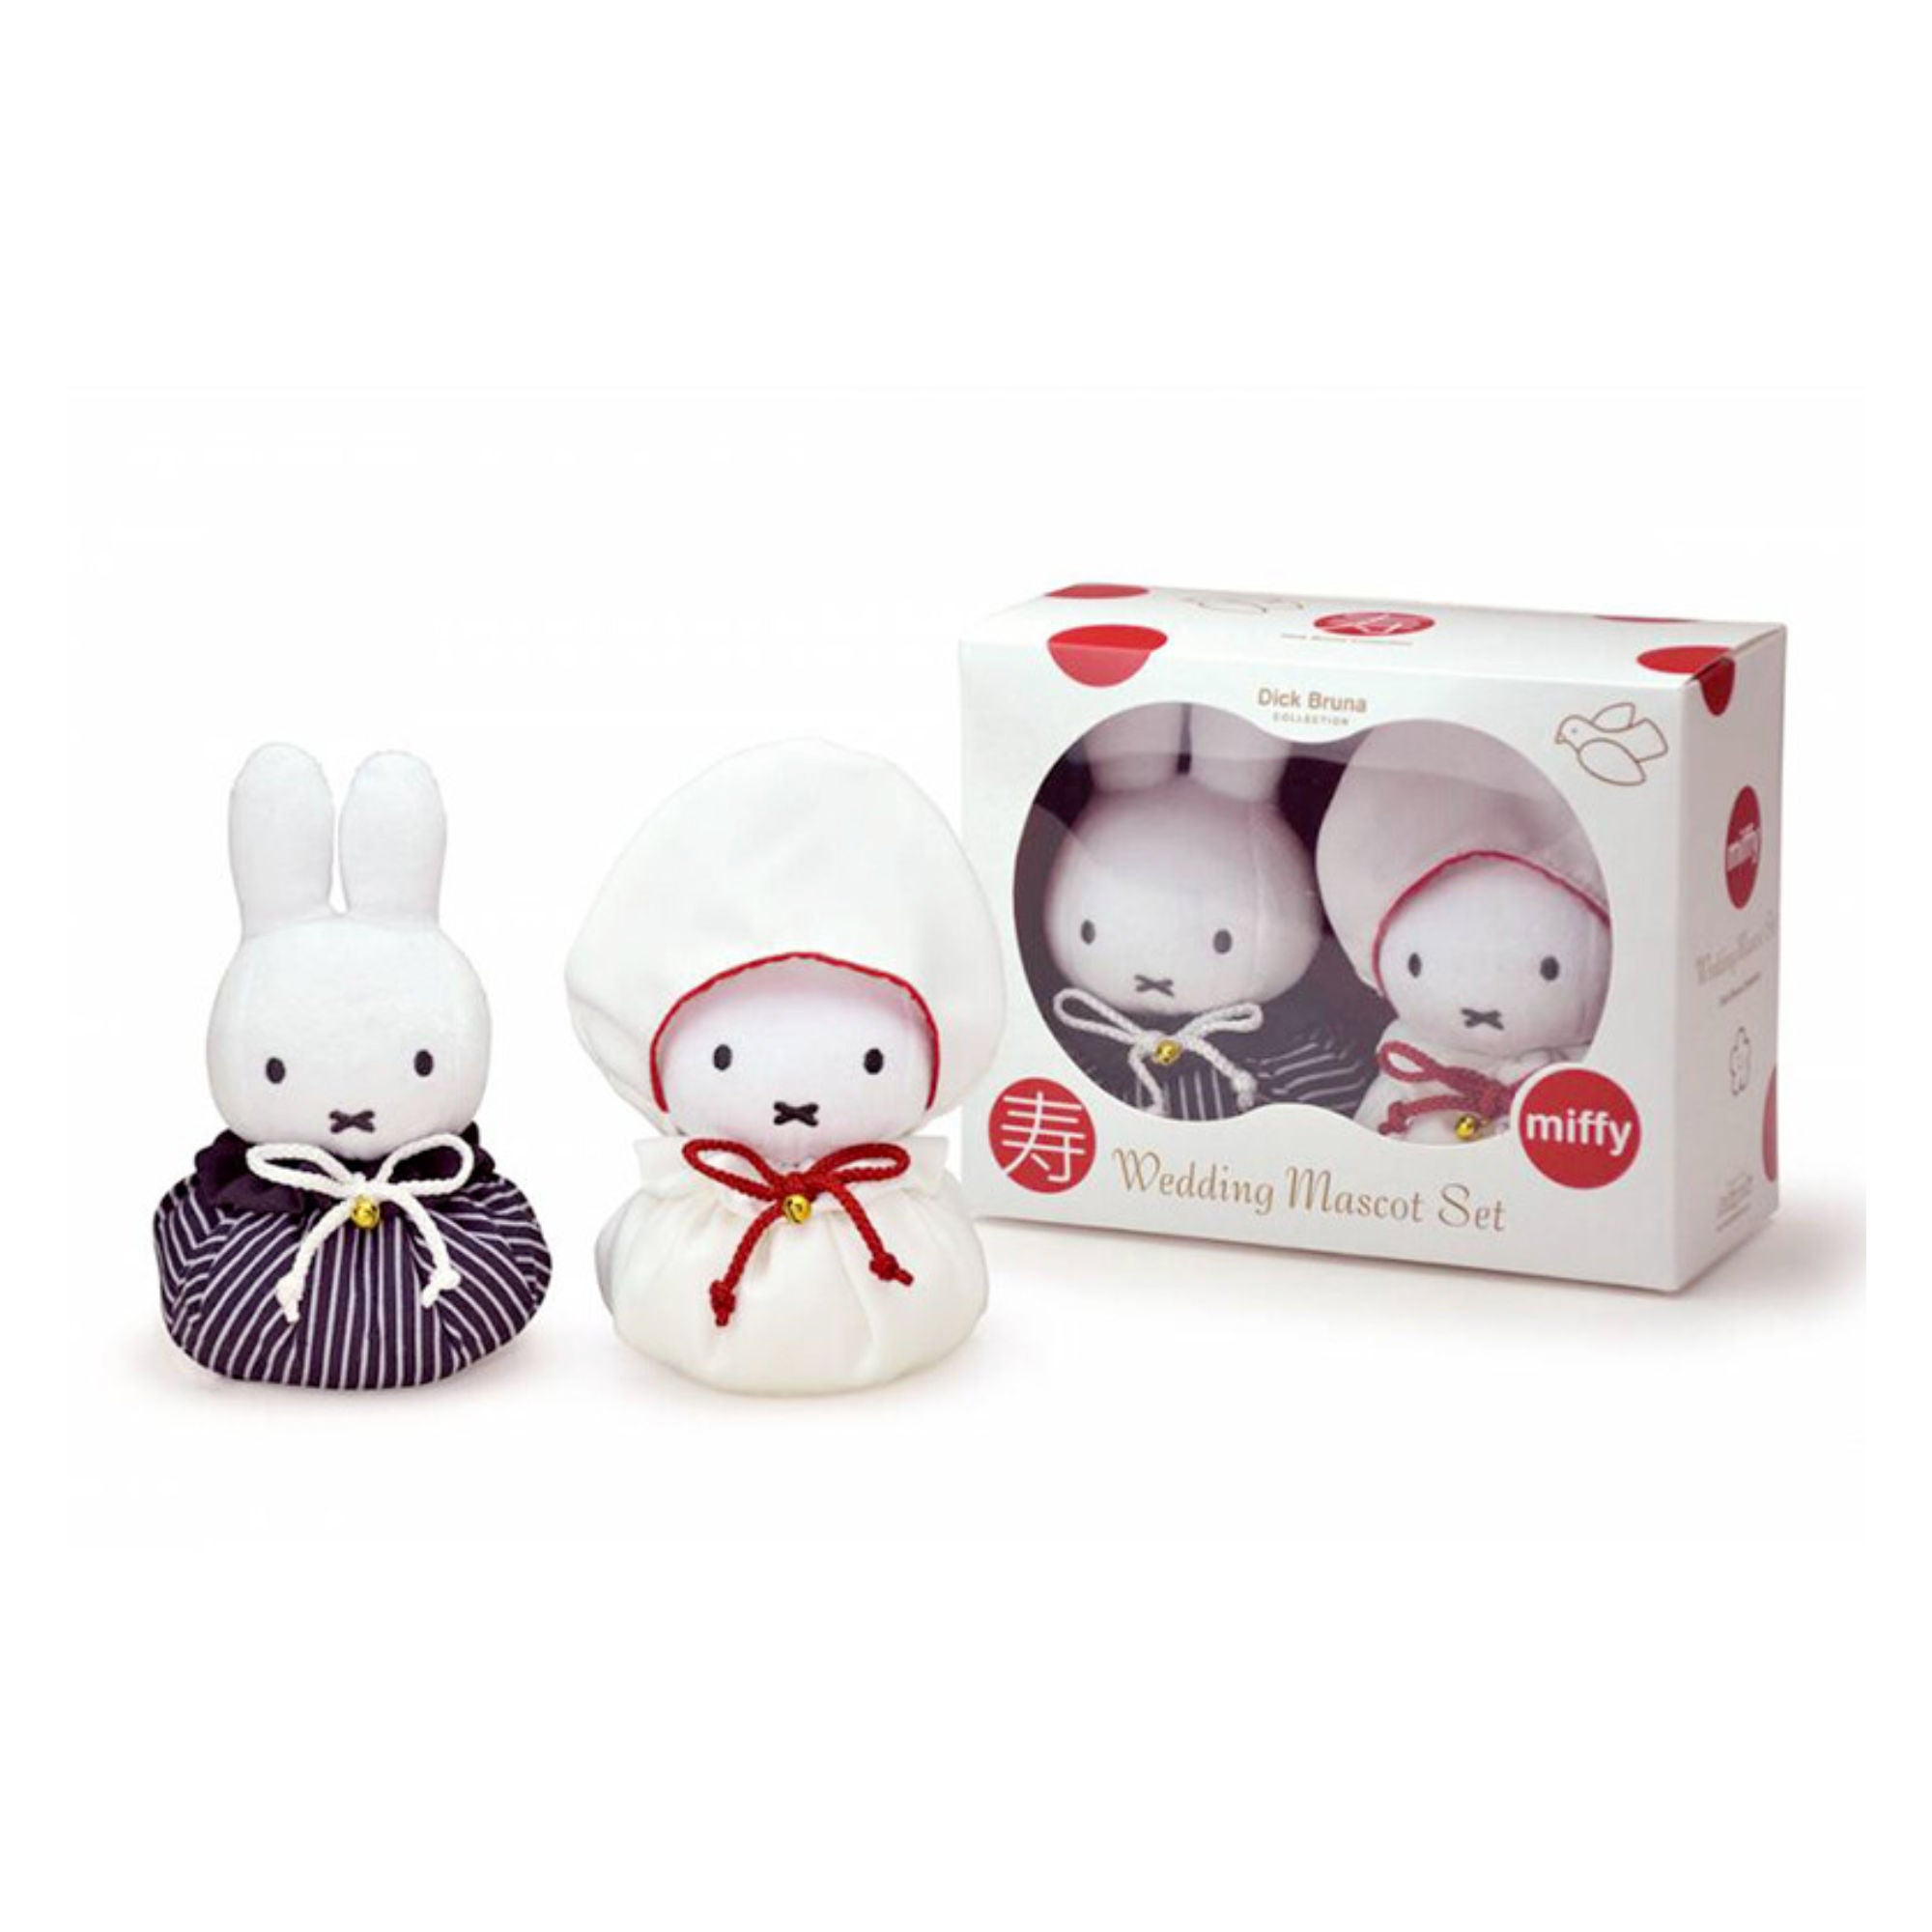 Miffy Wedding Mascot Set , Japanese Clothing